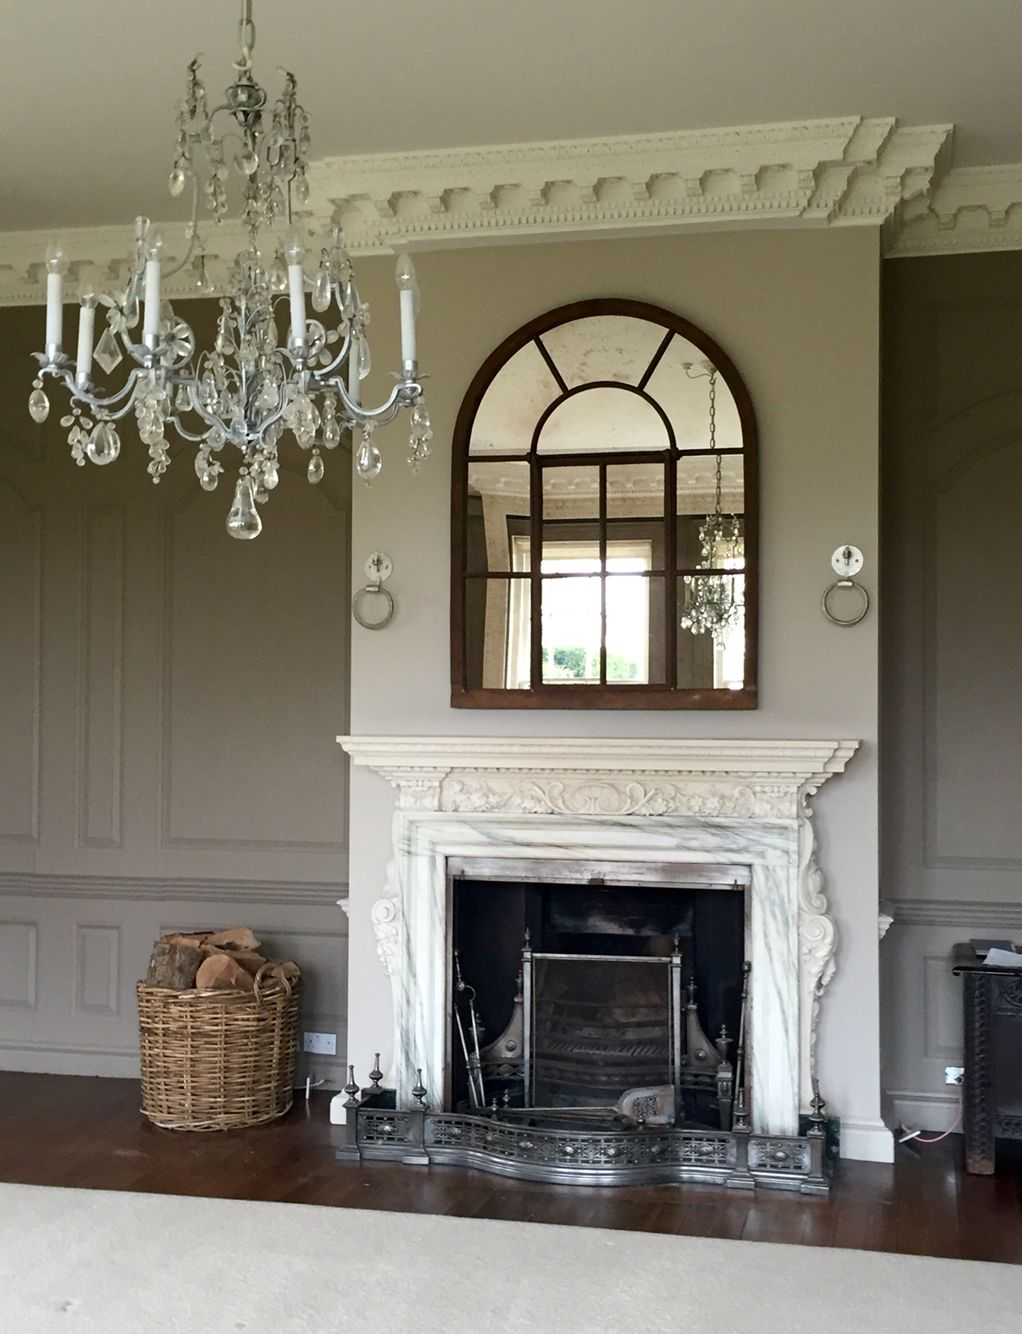 Over Mantle Display Of This Full Arch Rustic Window Mirror